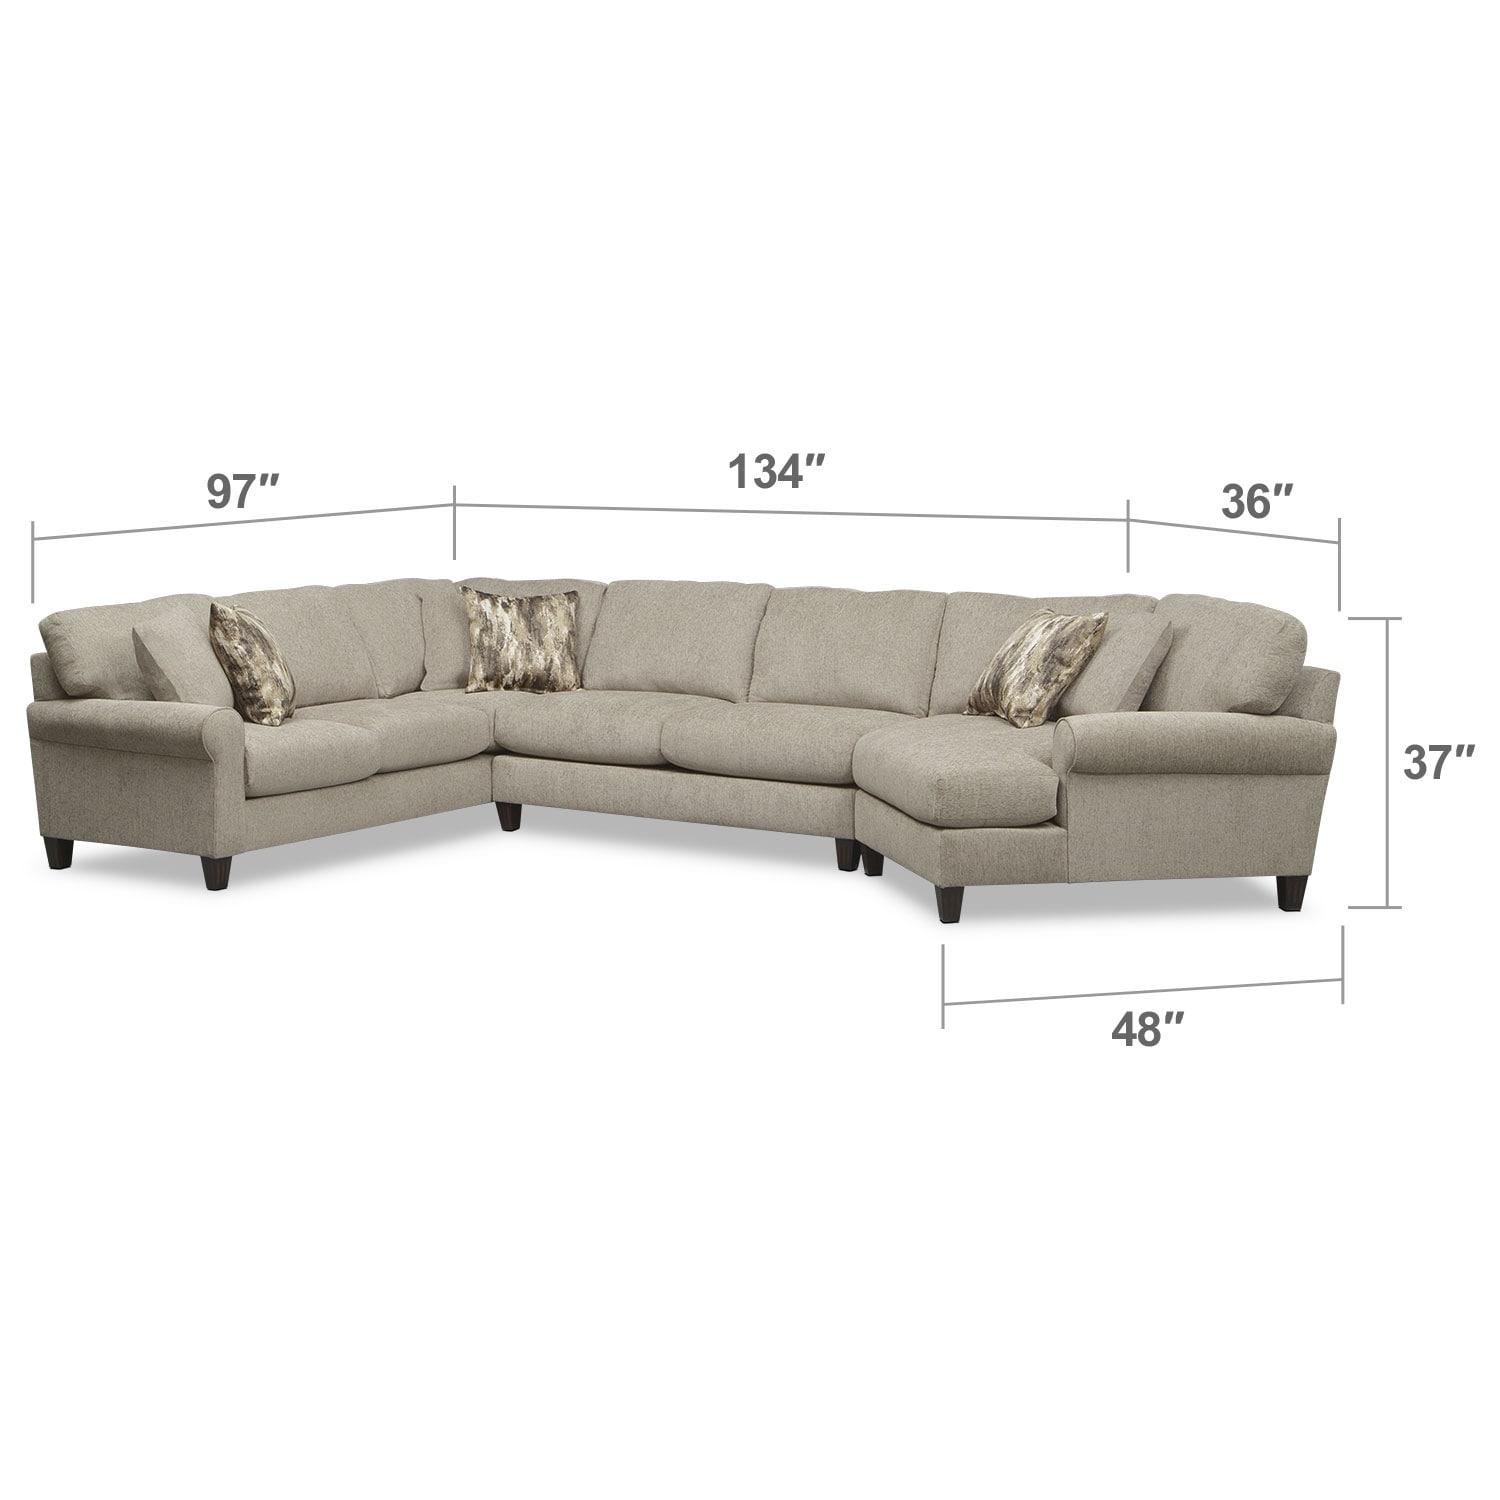 where to donate sectional sofa american furniture warehouse leather sofas karma 3 piece with right facing cuddler mink